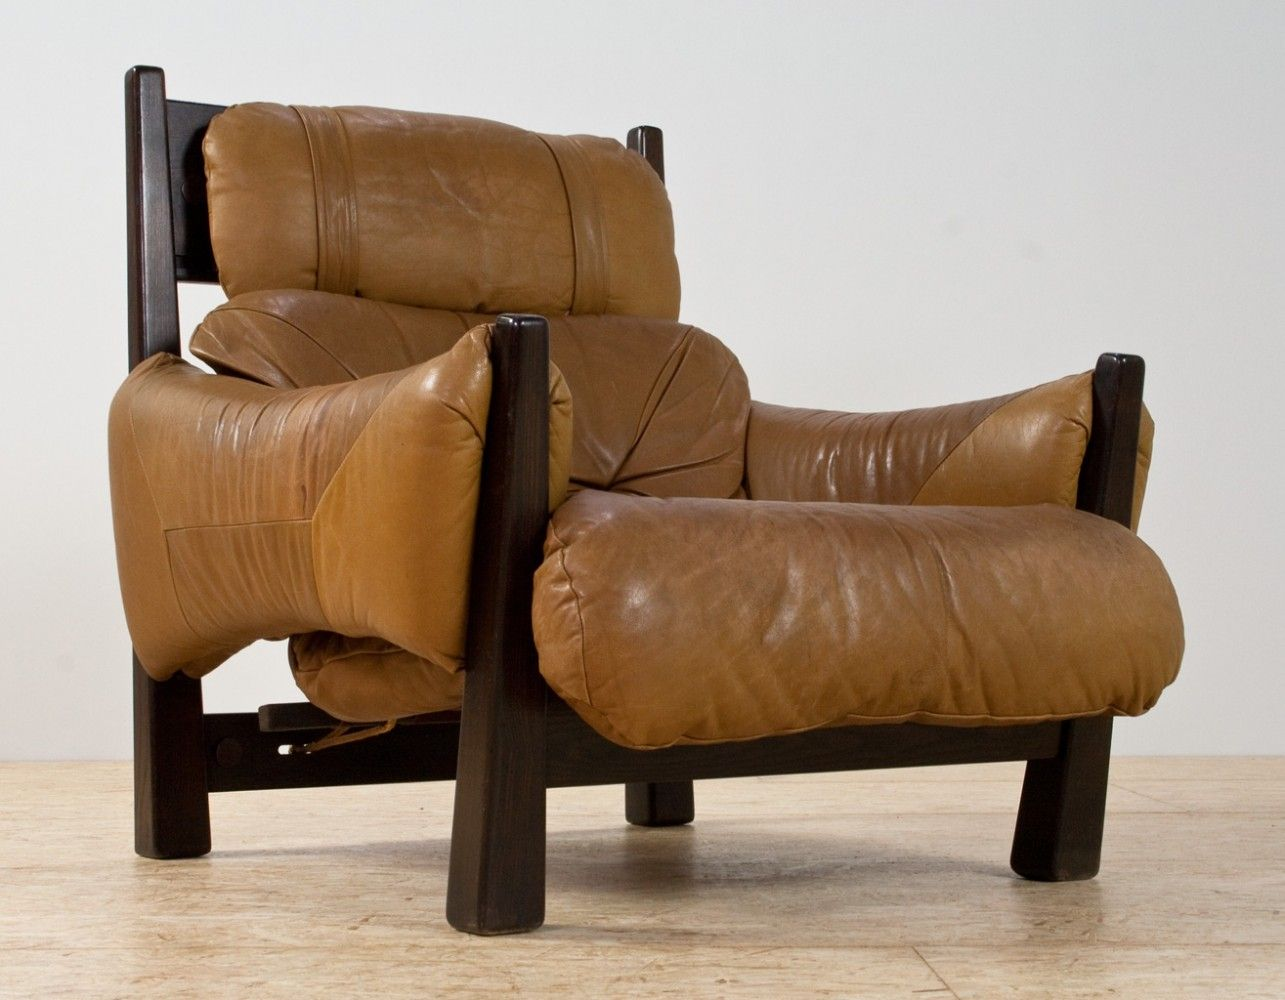 for sale brazilian modern lounge chair in camel coloured leather rh pinterest com